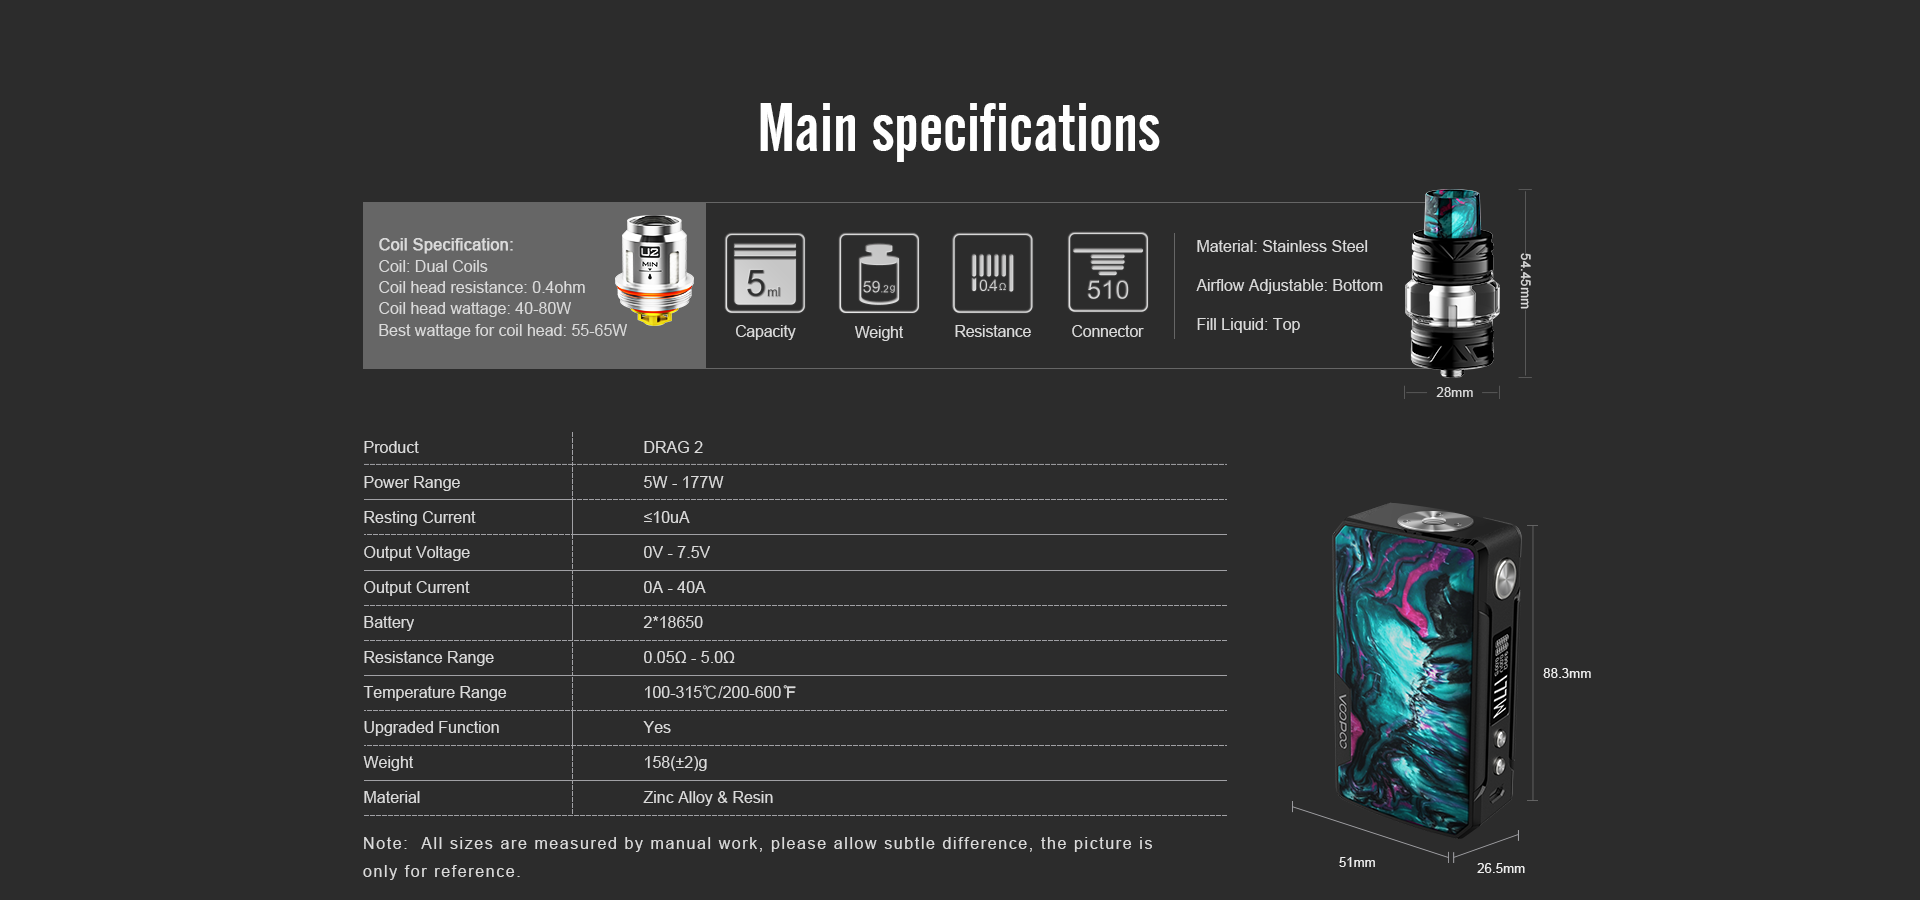 drag 2 main specification